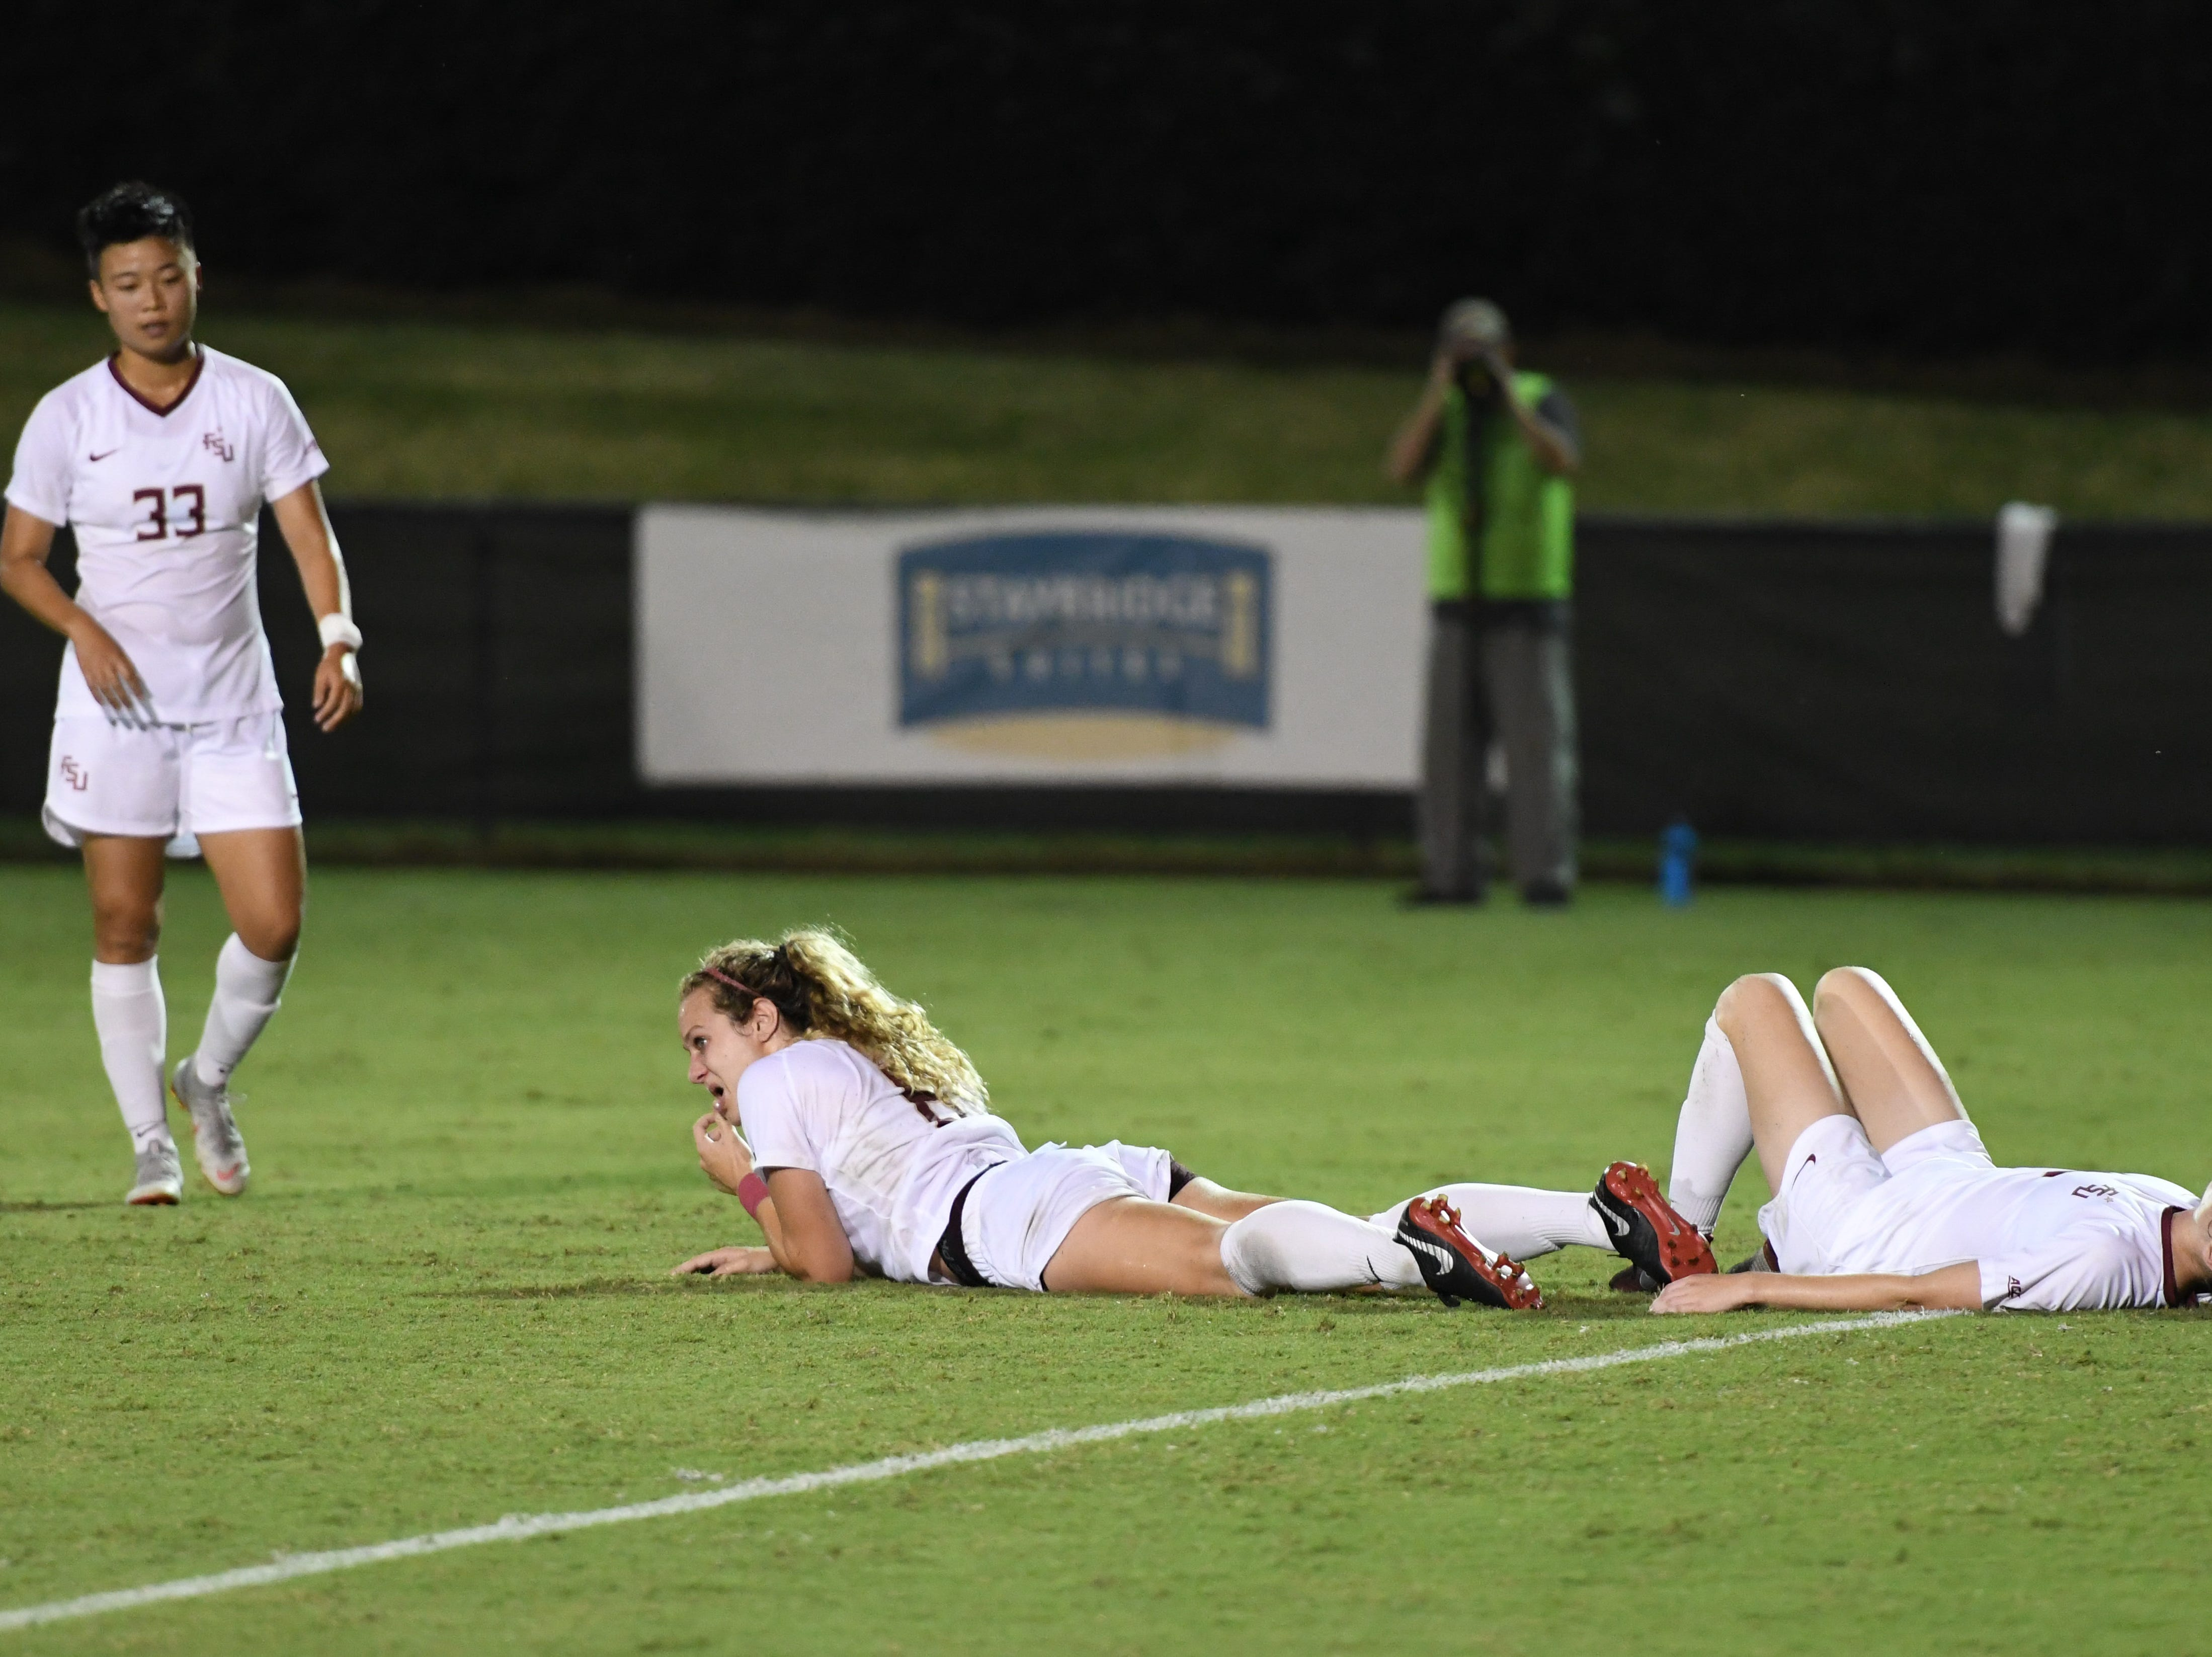 The FSU soccer team falls to No. 6 UNC 1-0 on September 14th at the Seminole Soccer Complex.